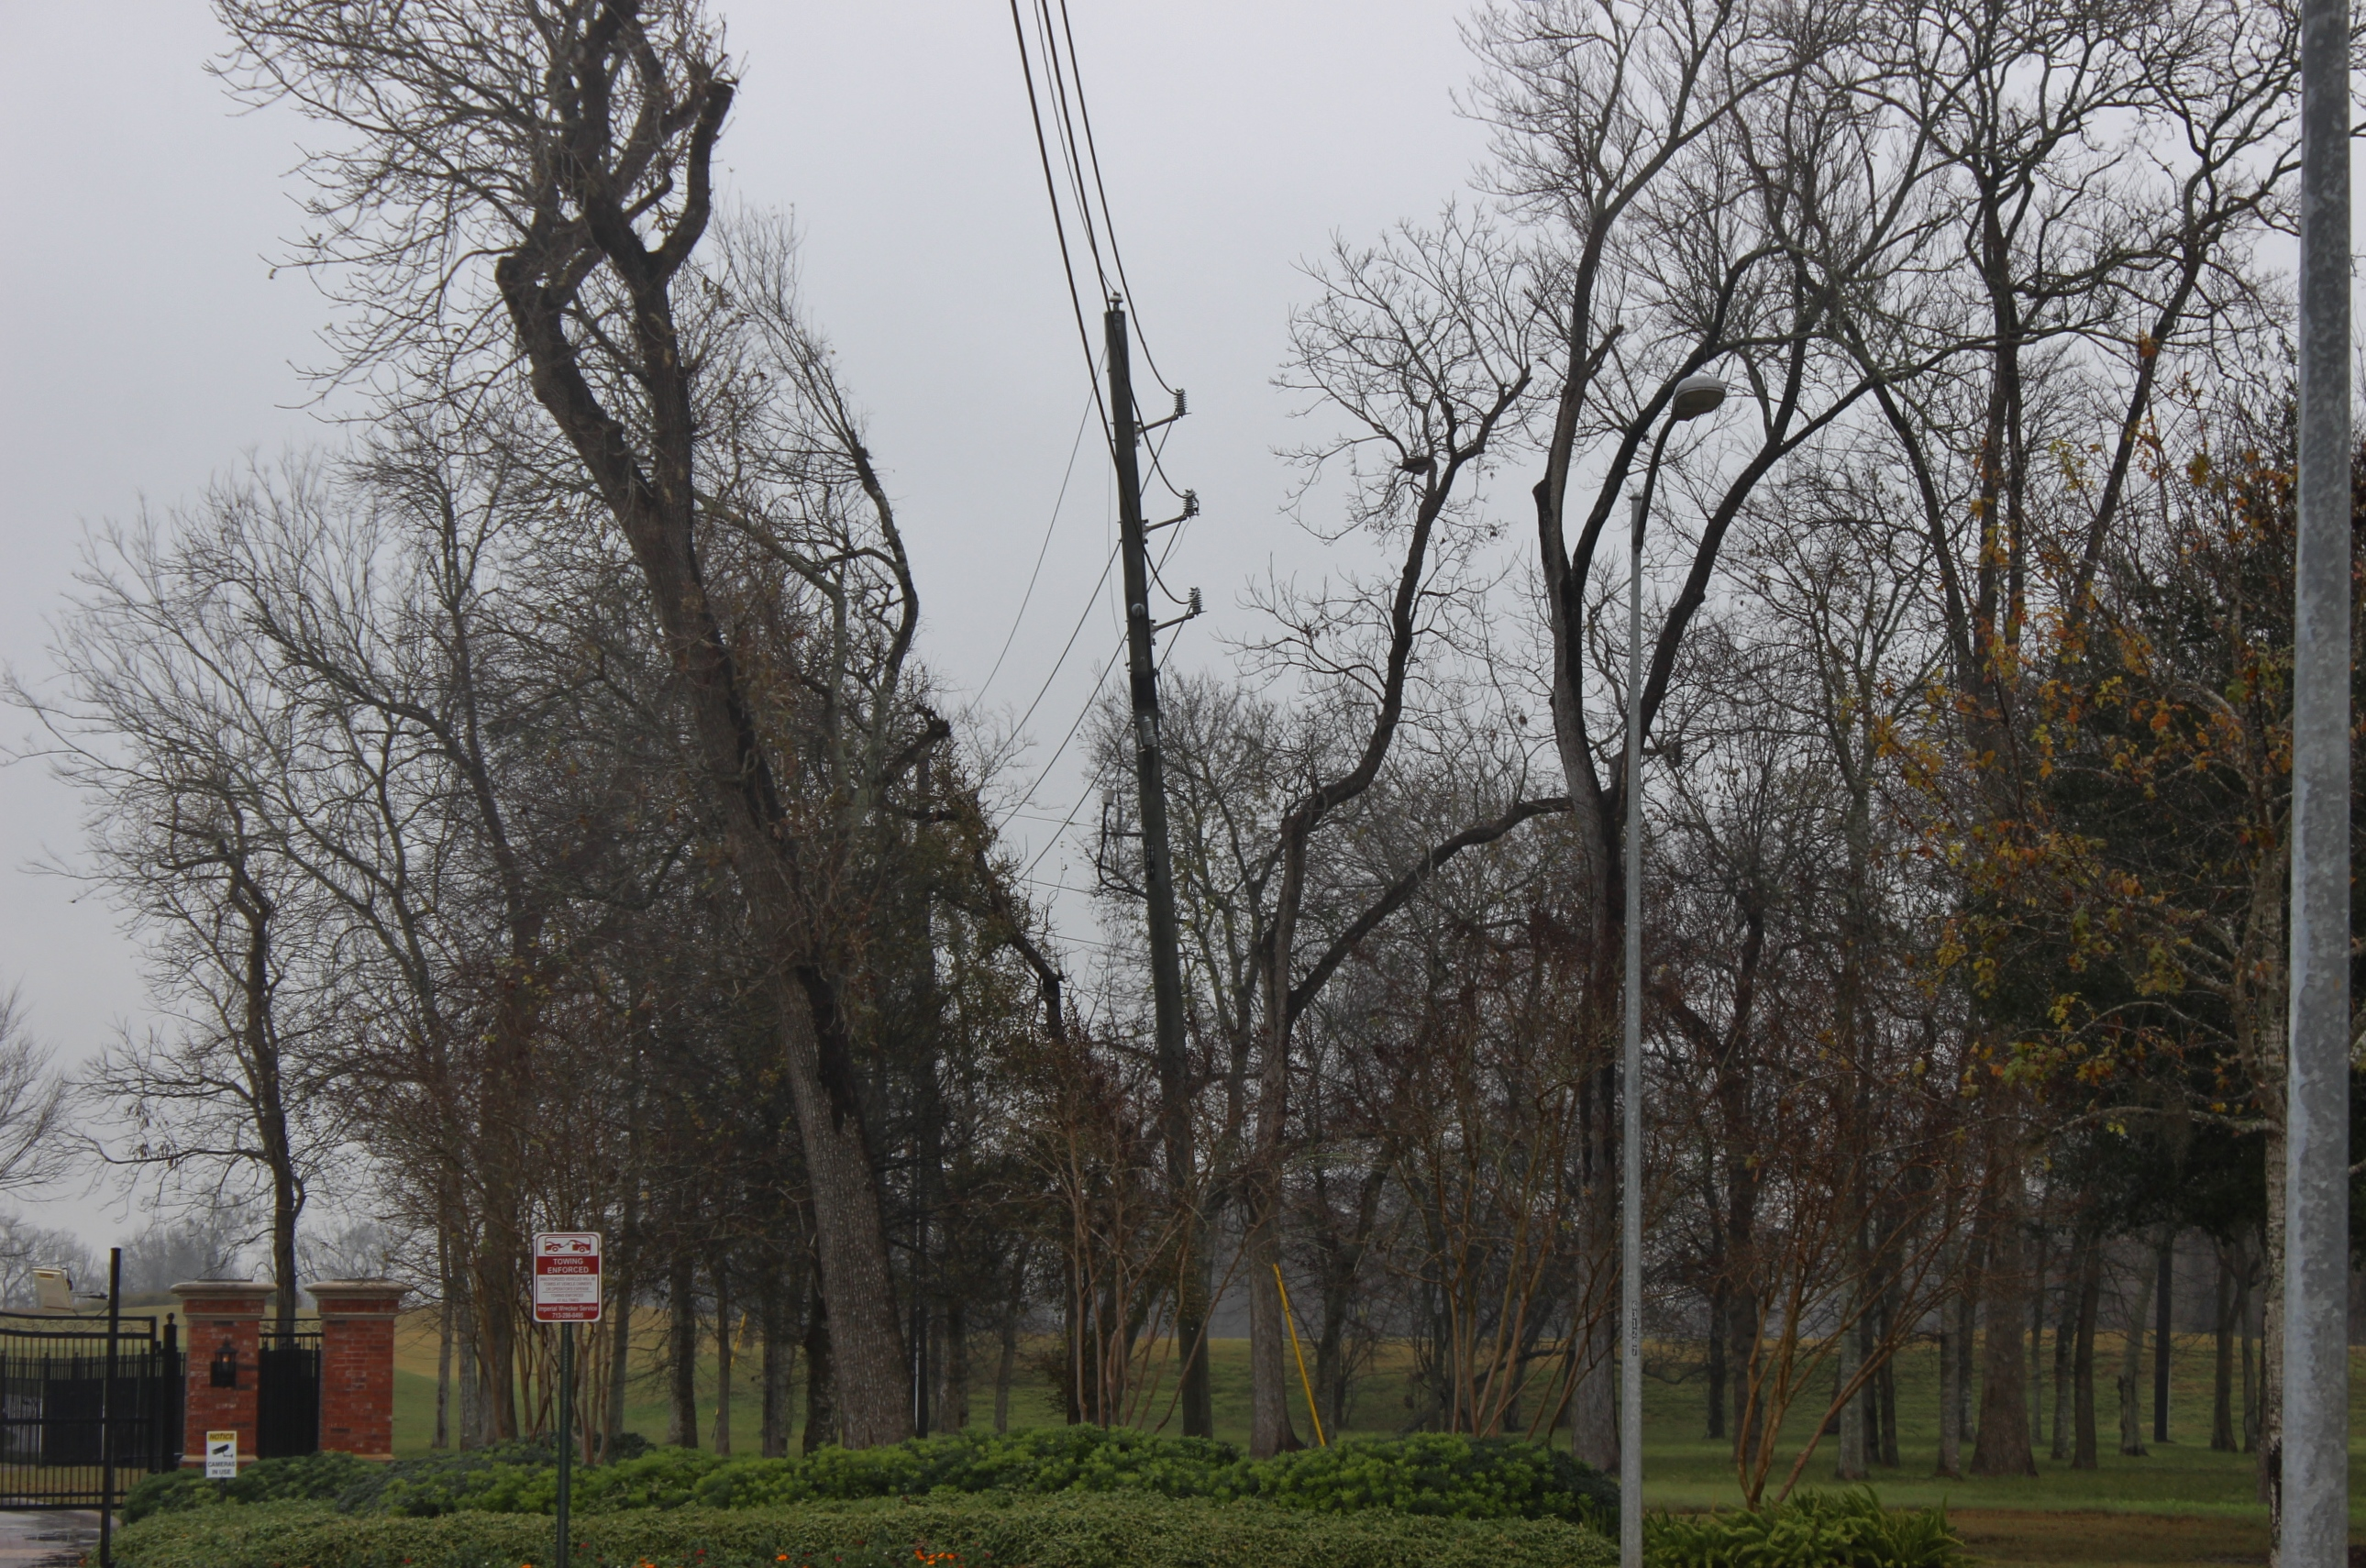 CenterPoint Energy says it's increasing tree-trimming near power lines